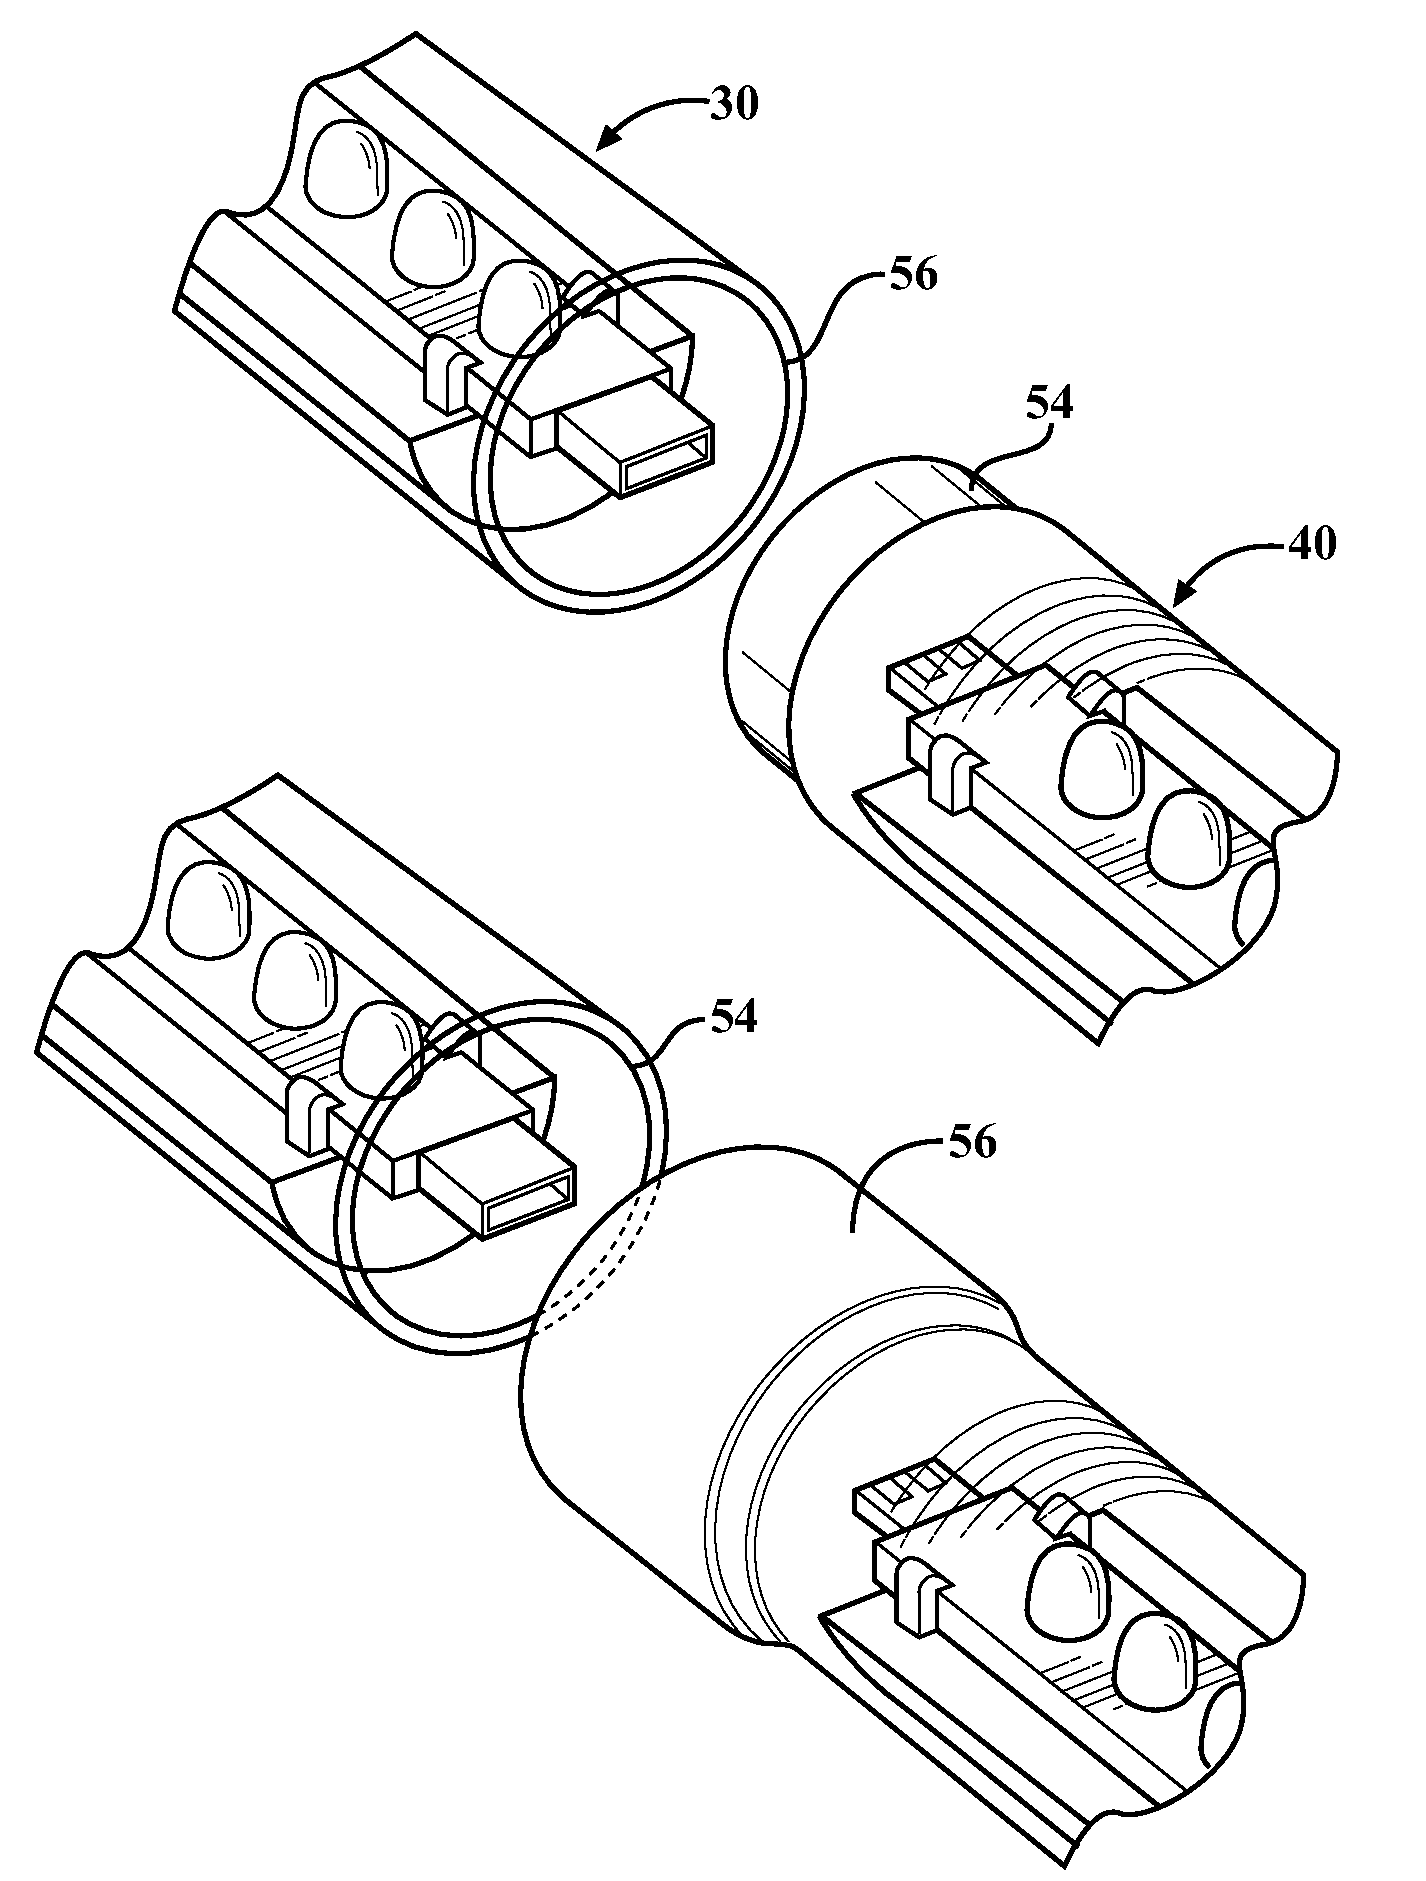 Analytics for US Patent No  8454193, Independent modules for LED